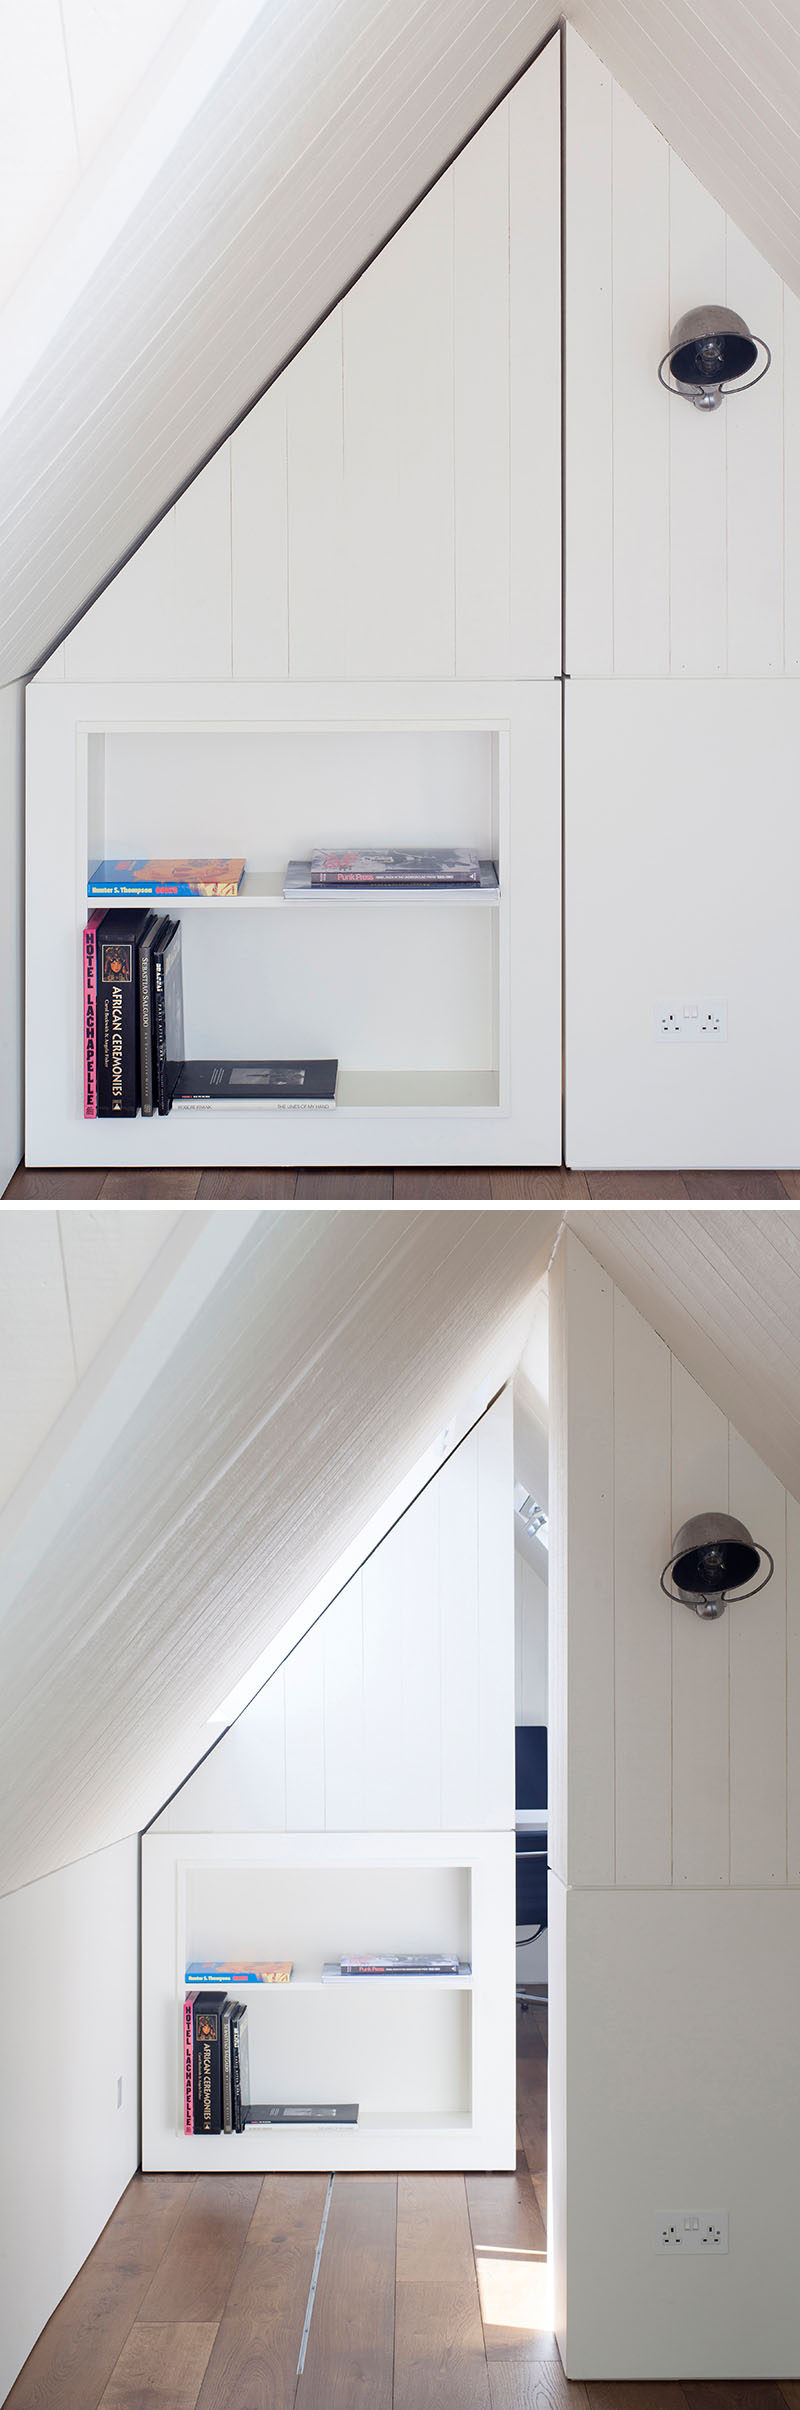 In This Modern Loft Conversion, A Wall Of White Paneling And Shelving Can  Be Pushed Back Into A Hidden Room Then Slides Closed Again To Make The  Space Even ...